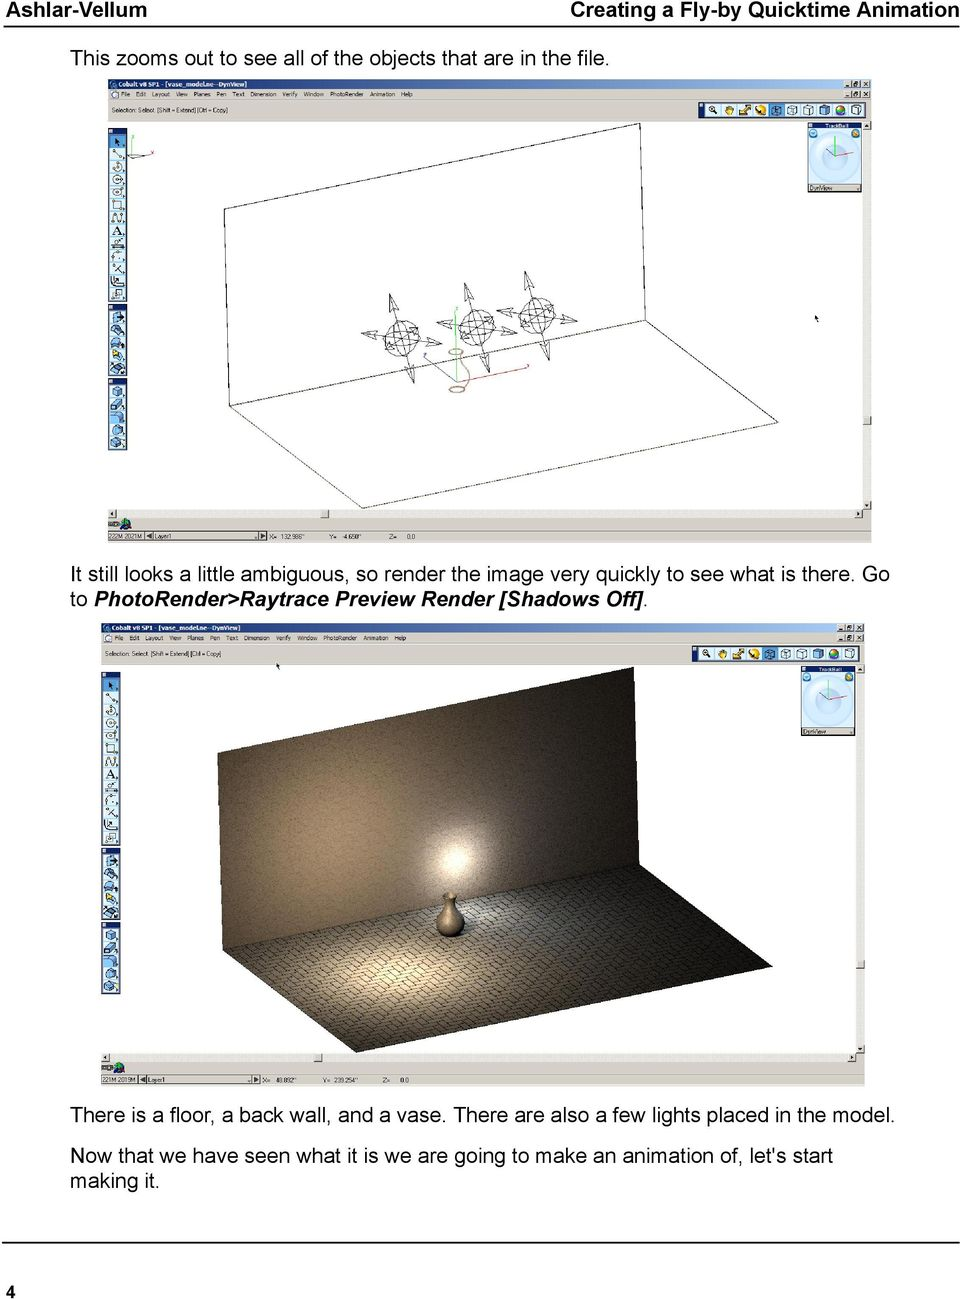 Go to PhotoRender>Raytrace Preview Render [Shadows Off]. There is a floor, a back wall, and a vase.